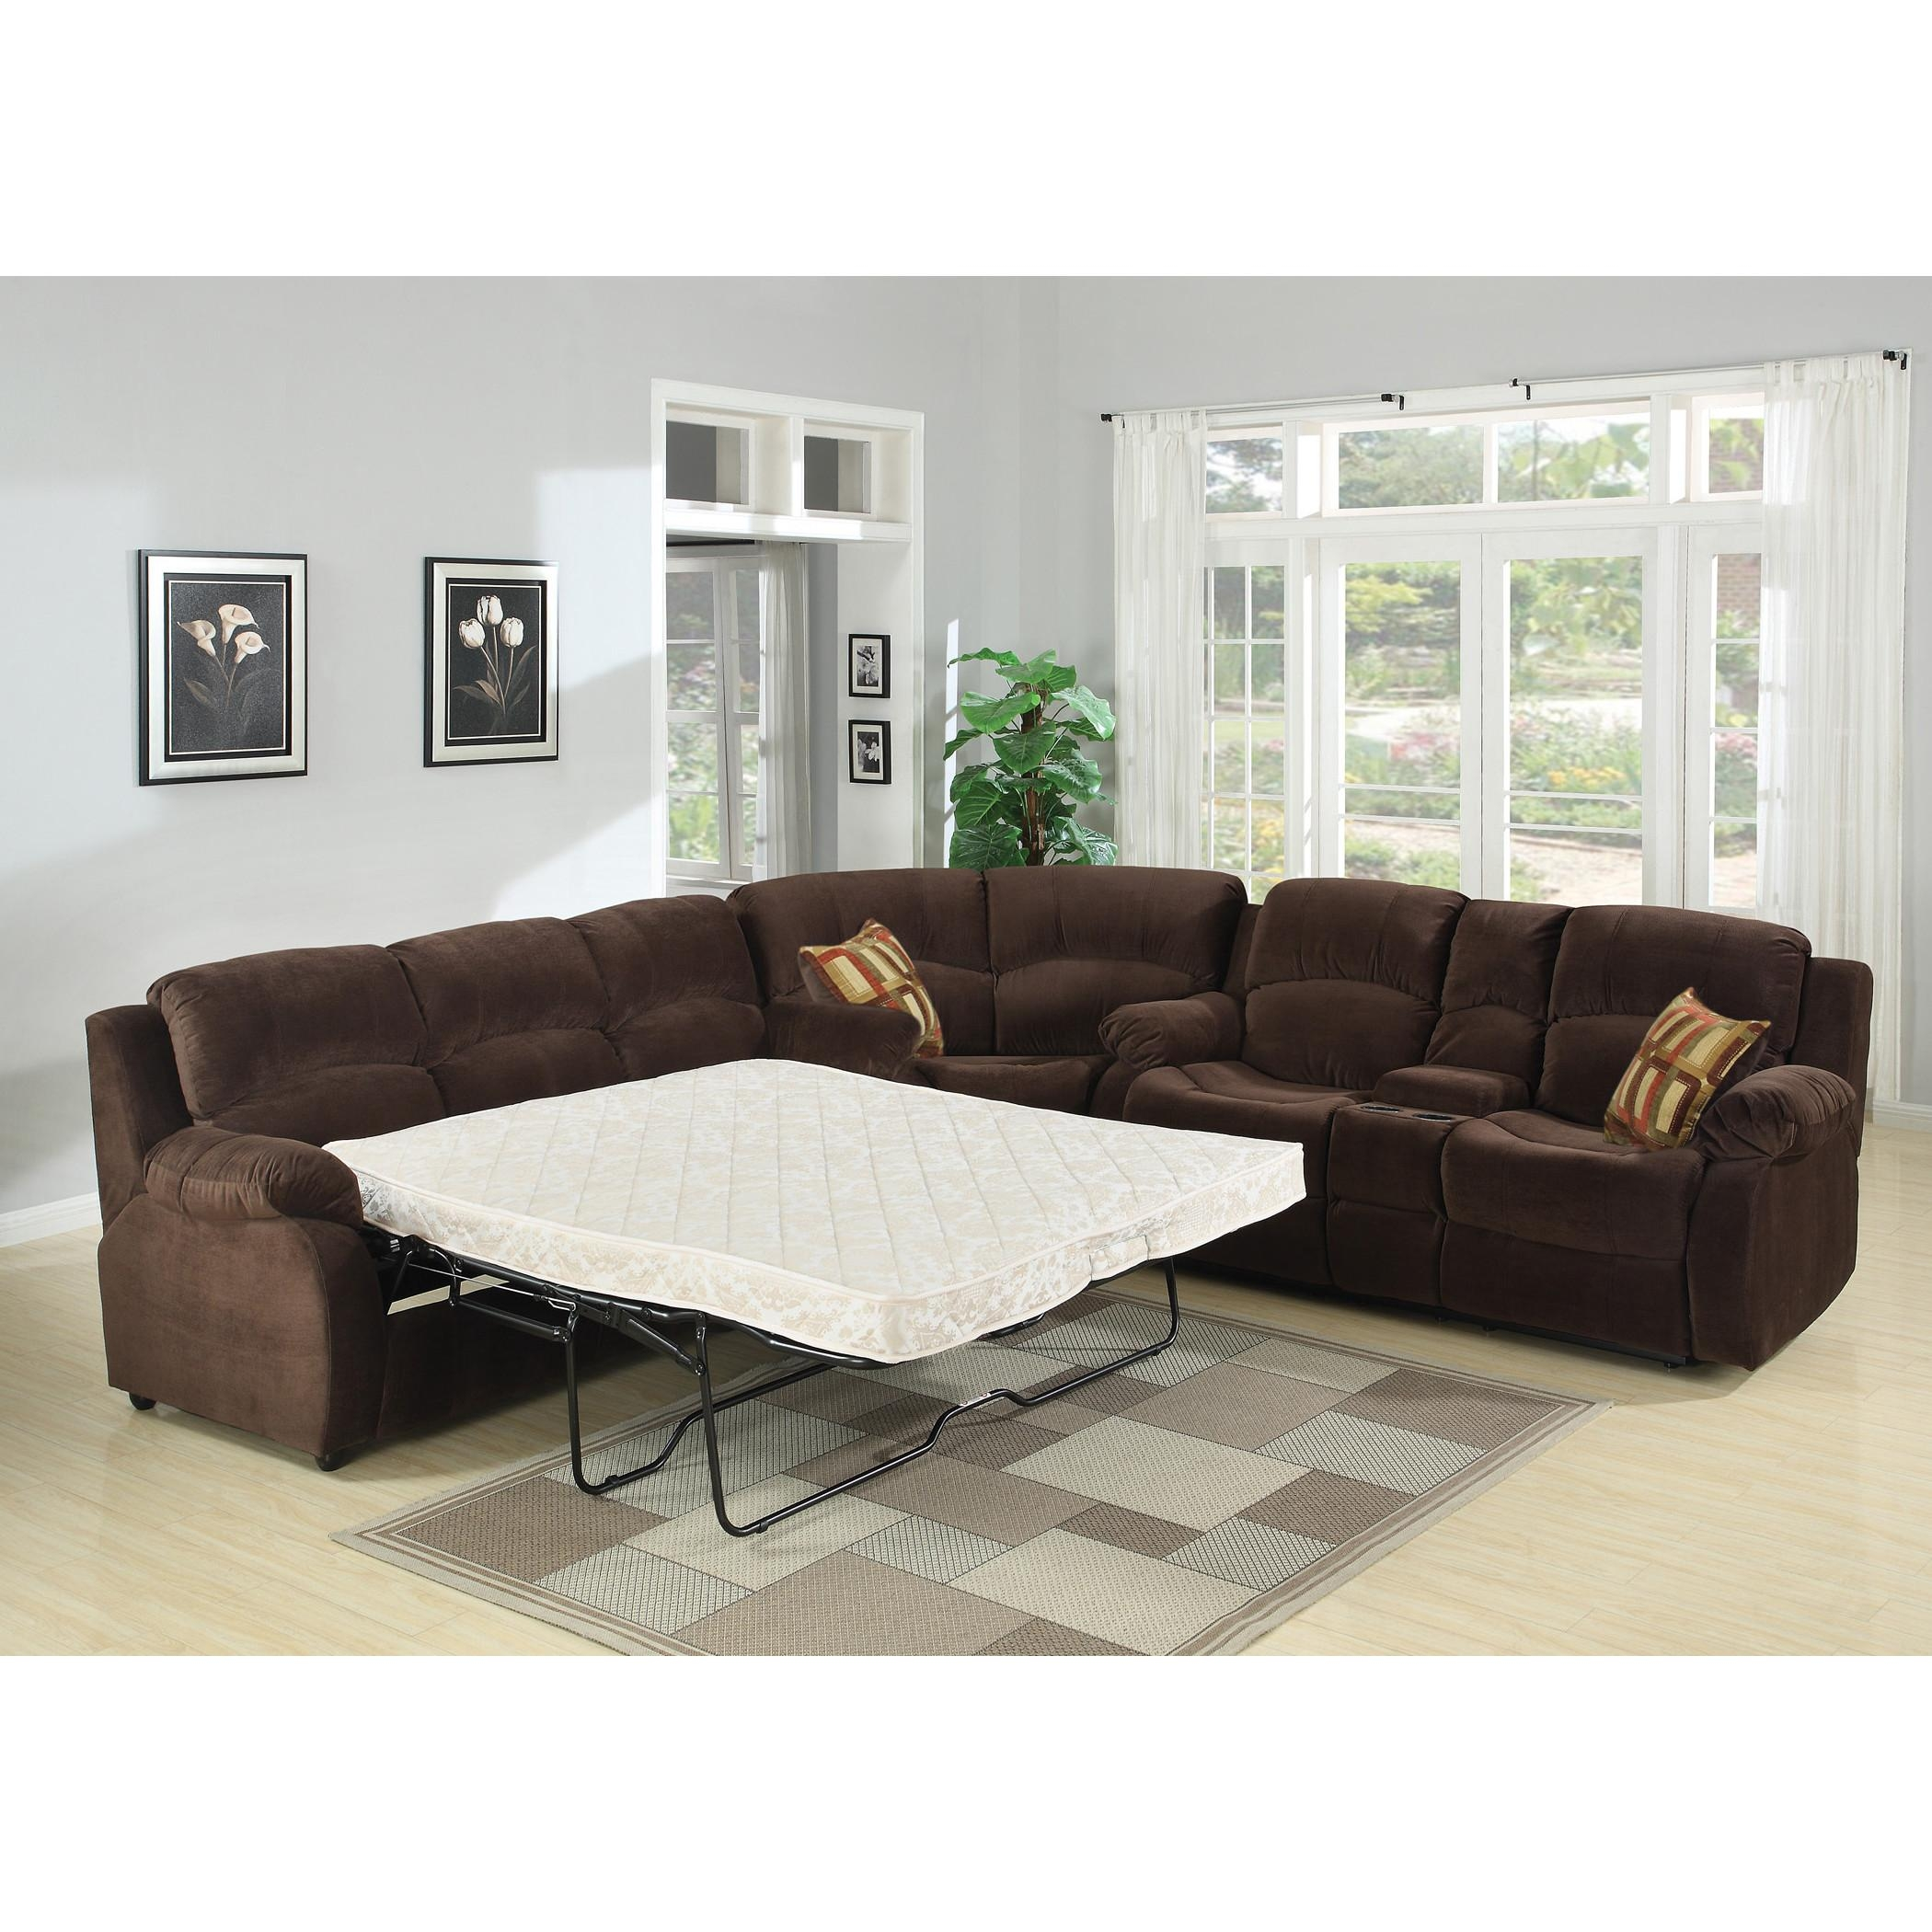 Sofas Center : Sectional Sofa With Sleeper And Chaise Ansugallery Regarding Sleeper Recliner Sectional (Image 19 of 20)